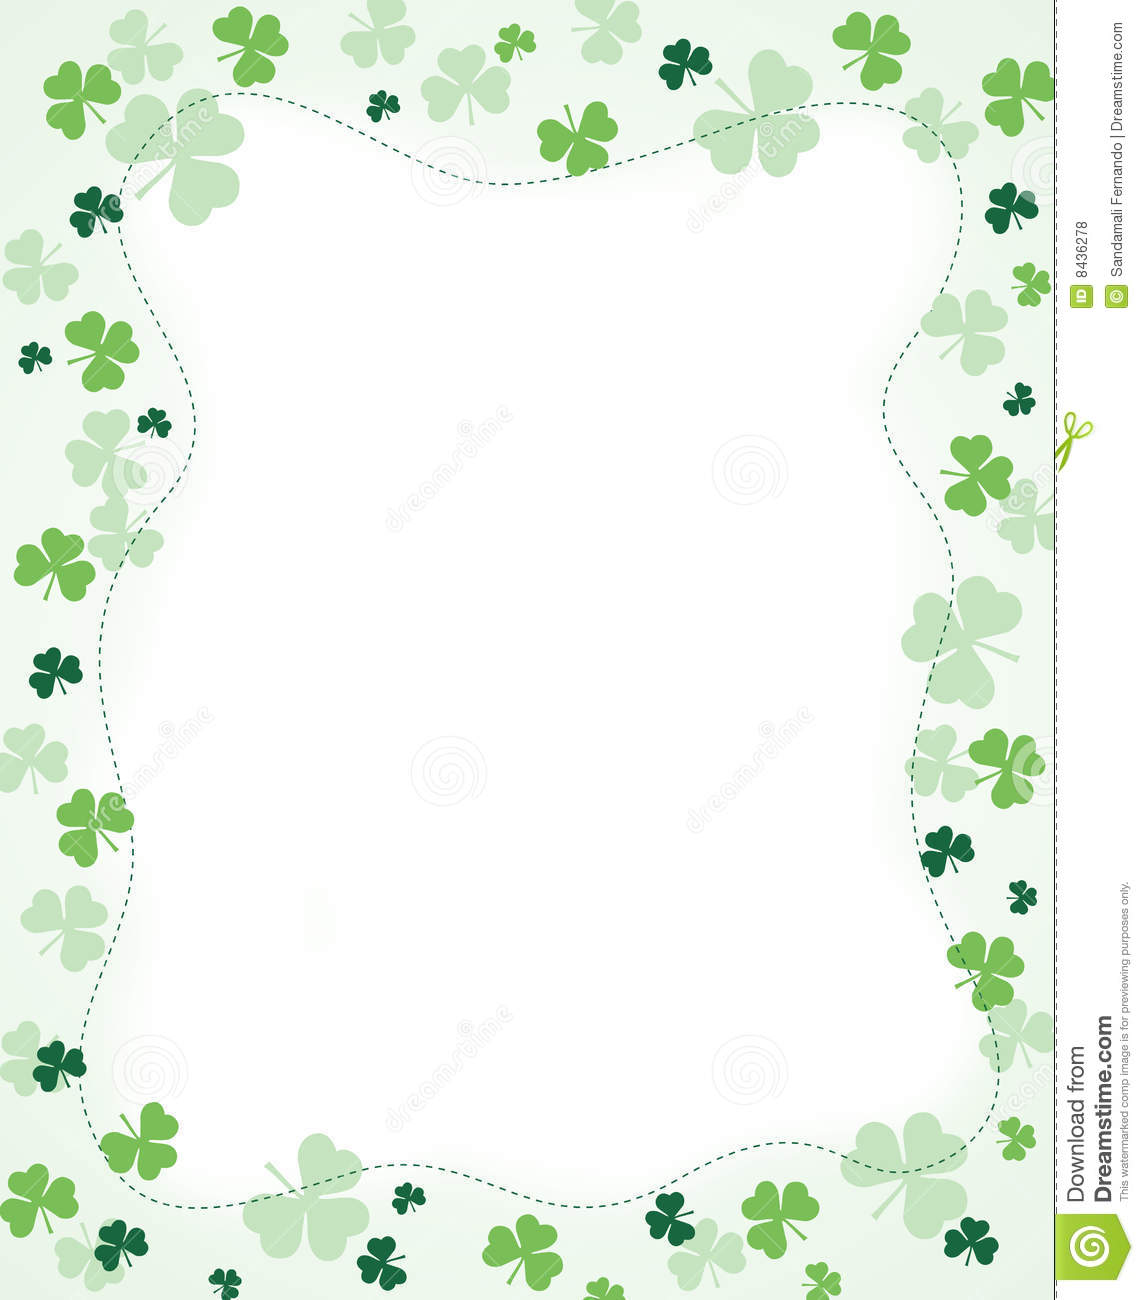 Shamrock Border Royalty Free Stock Photos - Image: 8436278